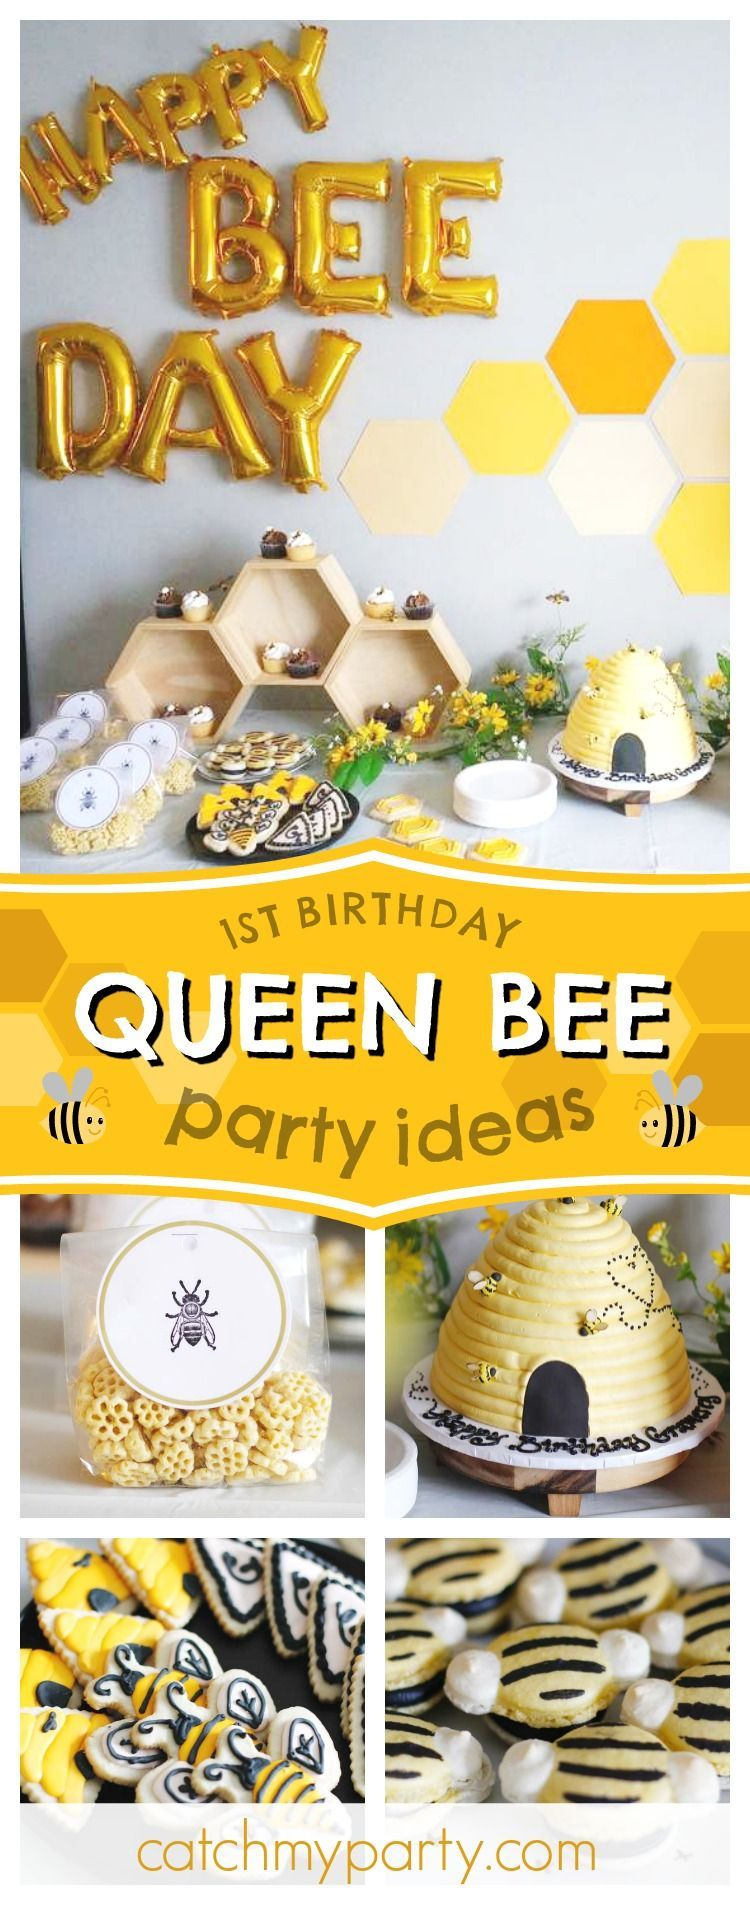 Check out this awesome Queen Bee themed 1st birthday party! The bee hive birthday cake and the bee cookies are wonderful!! See more party ideas and share yours at CatchMyParty.com #catchmyparyy #partyideas #queenbee #1stbirthdayparty #firstbirthdaygirl